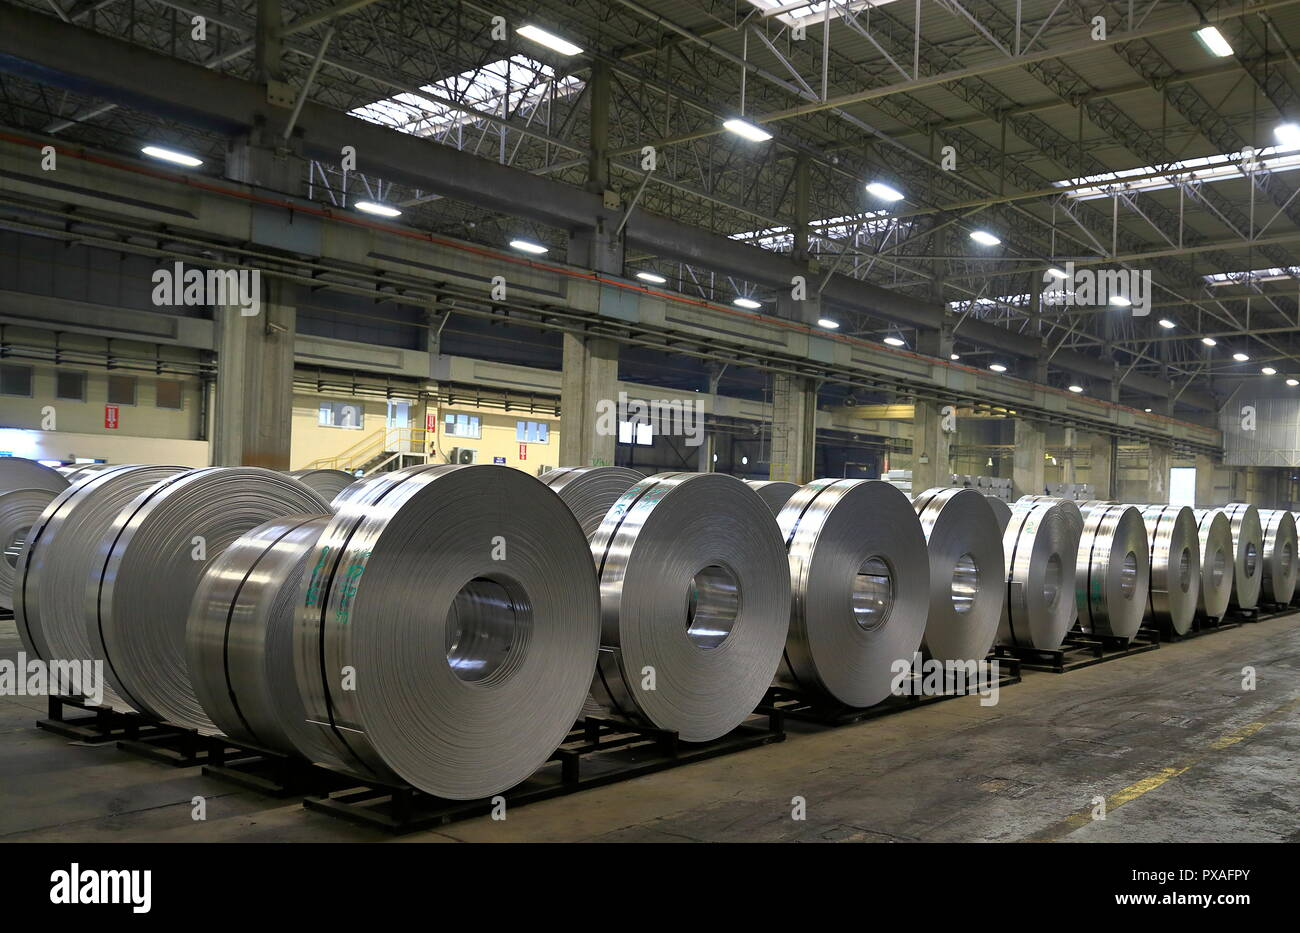 View of finished aluminum sheet rolls in a factory producing semi-finished products. - Stock Image